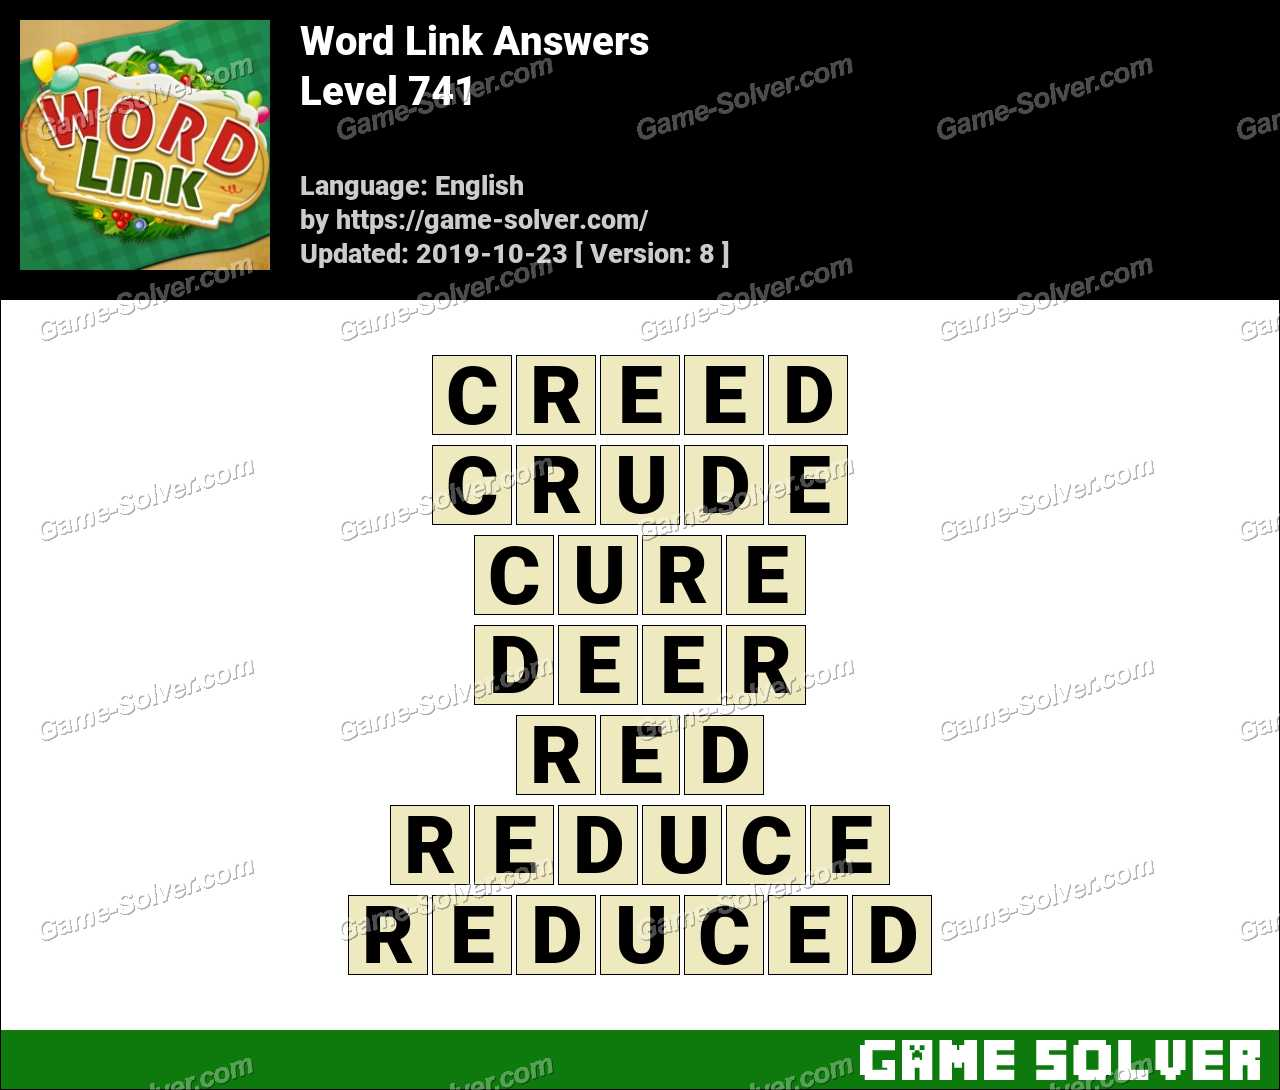 Word Link Level 741 Answers